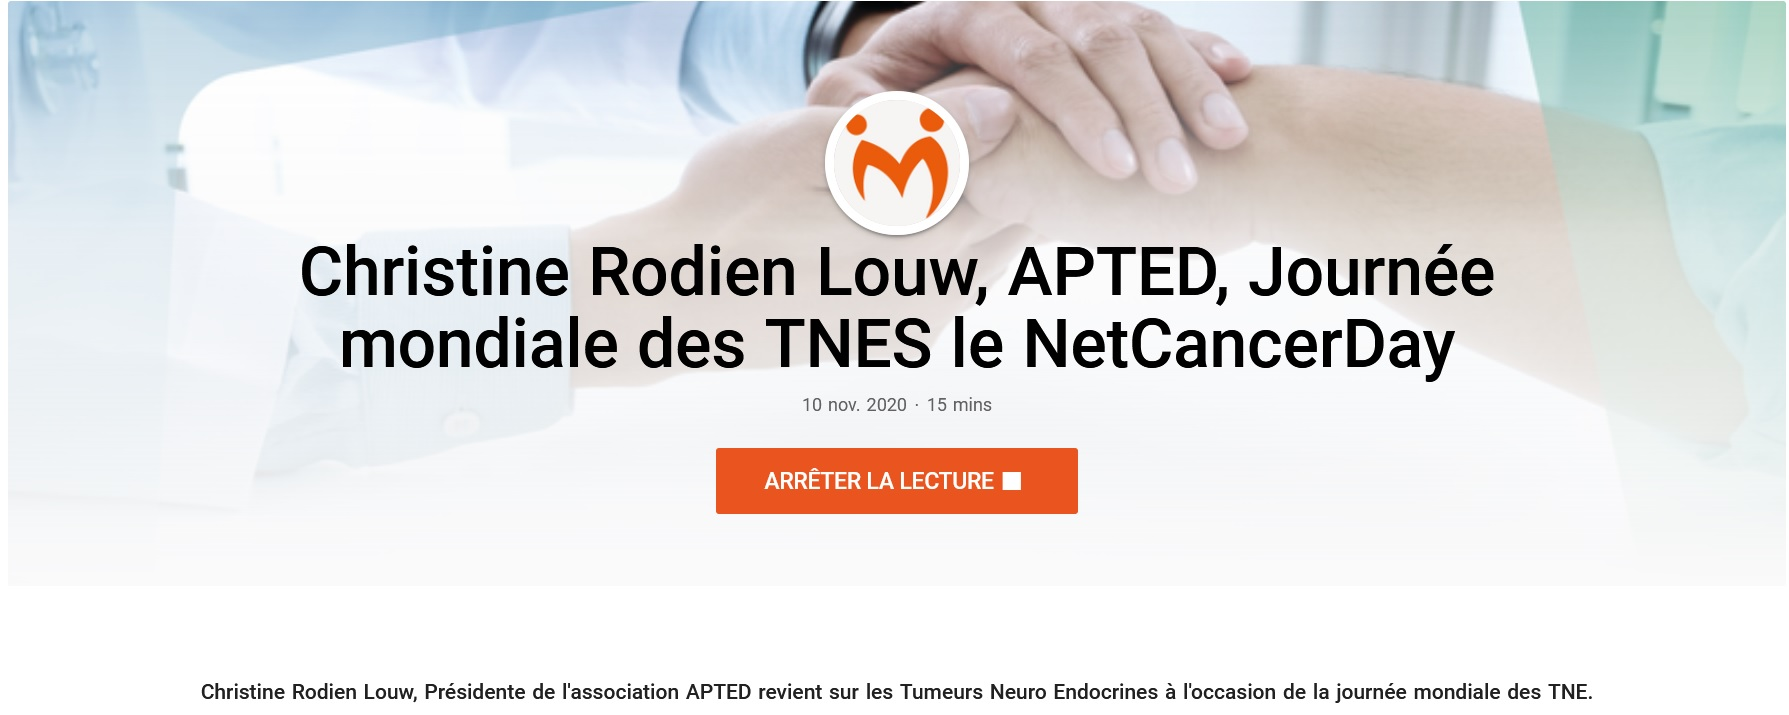 APTED France parle des TNEs / APTED France Talks About NETs